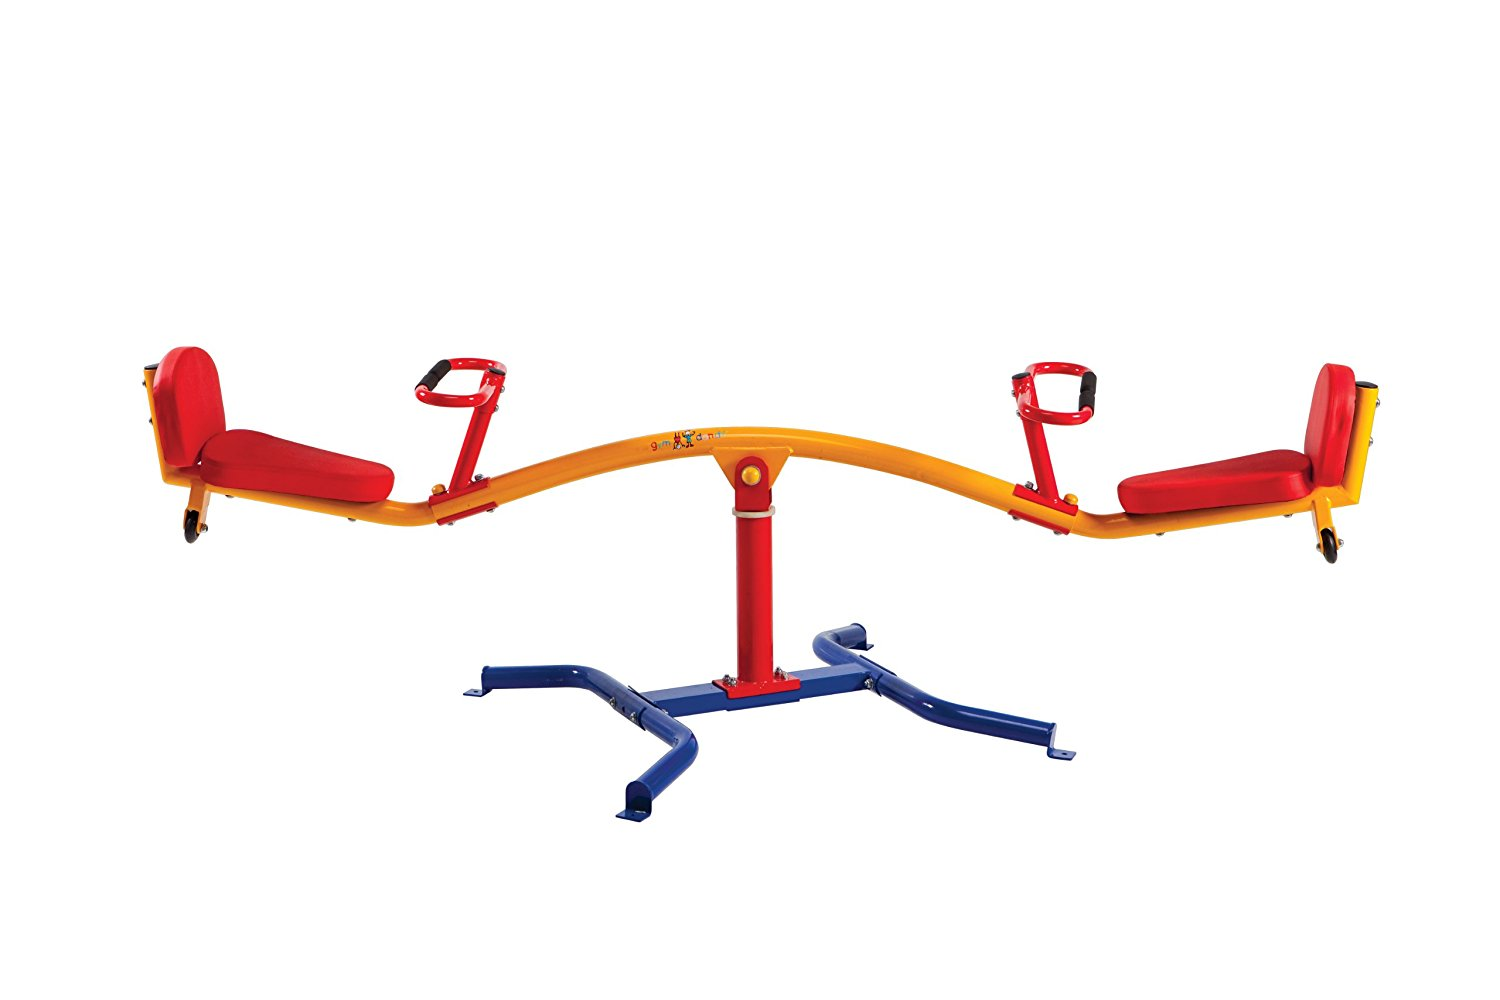 Attractive Teeter Totter for Kids Play Ground Idea: Little Tikes Alligator Teeter Totter | The Teeter Totter | Teeter Totter